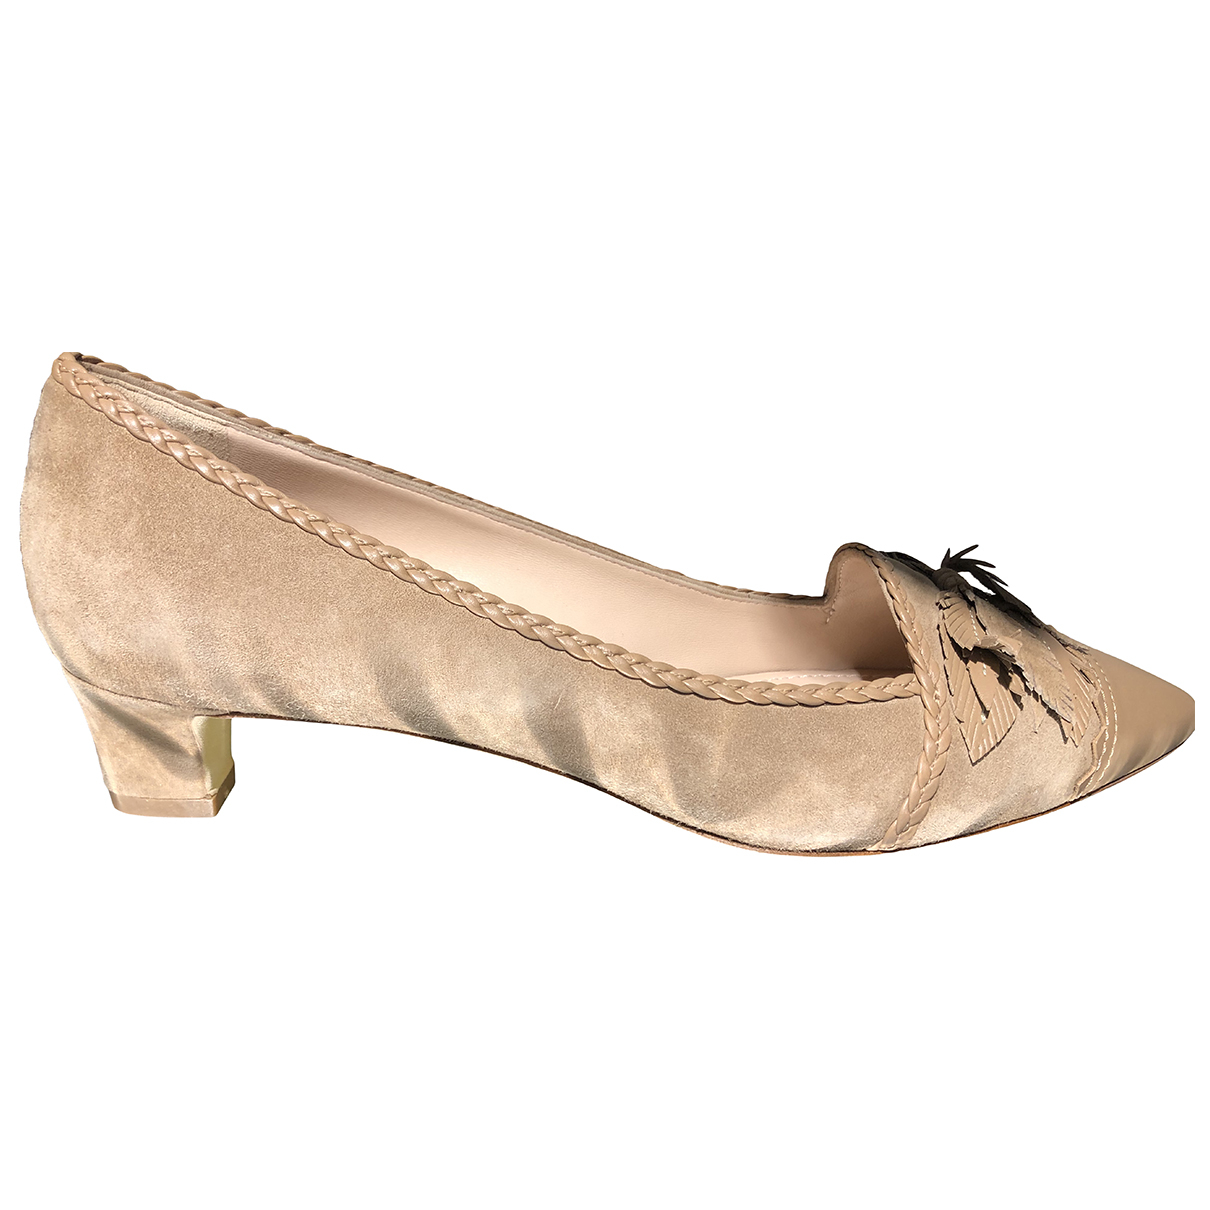 Tod's \N Beige Suede Heels for Women 40.5 EU